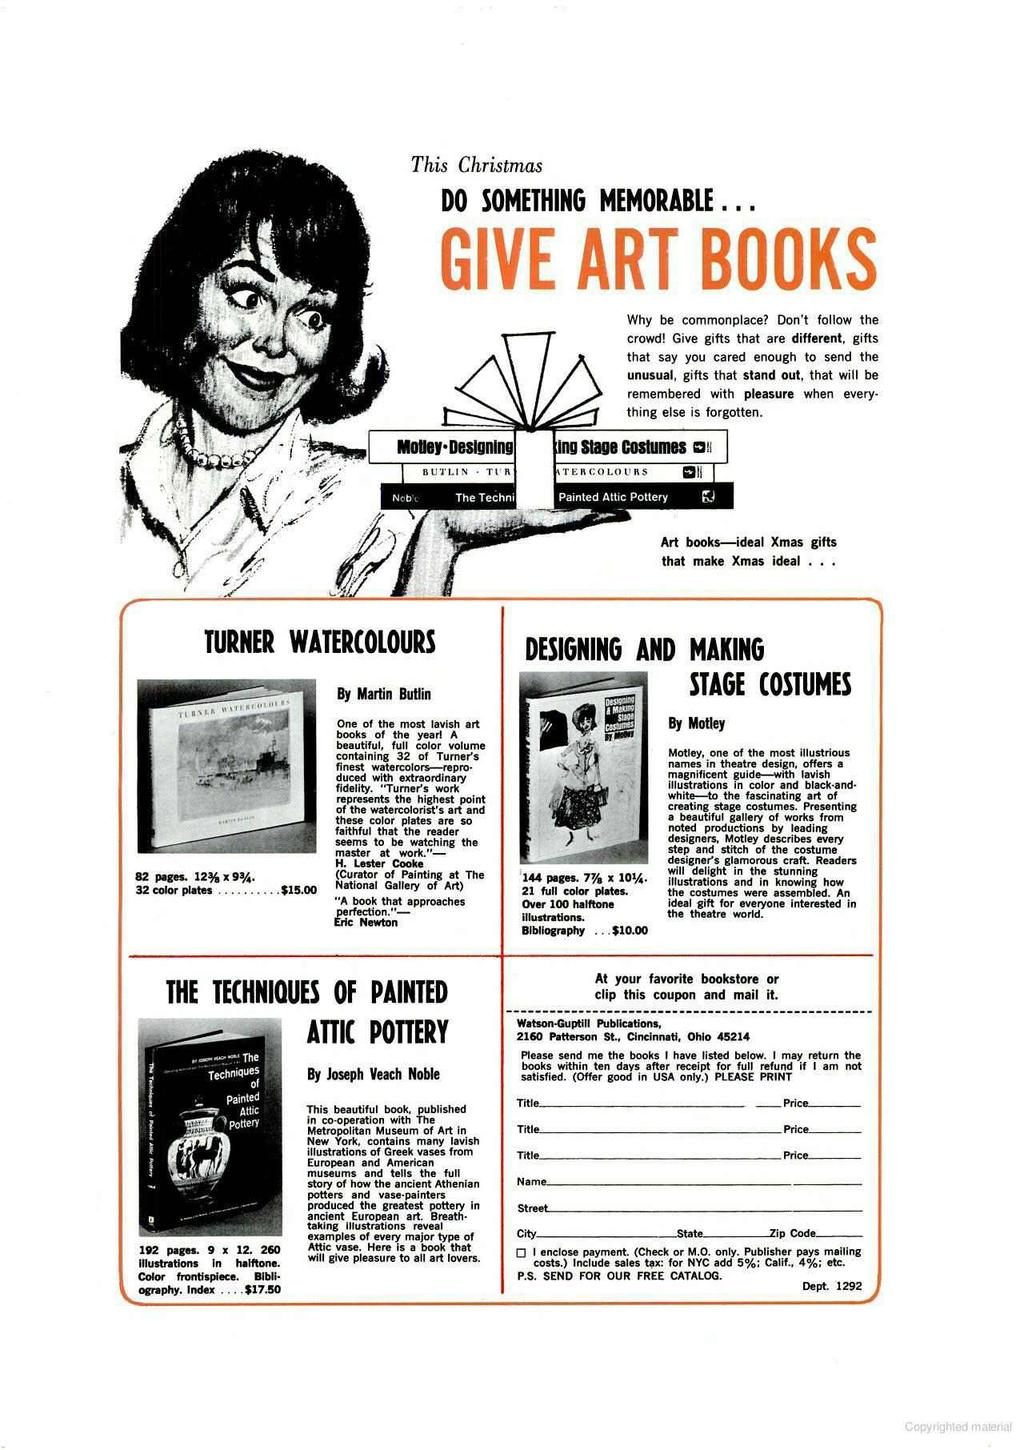 This Christmas DO SOMETHING MEMORABLE... GIVE ART BOOKS Why be commonplace? Don't follow the crowd!